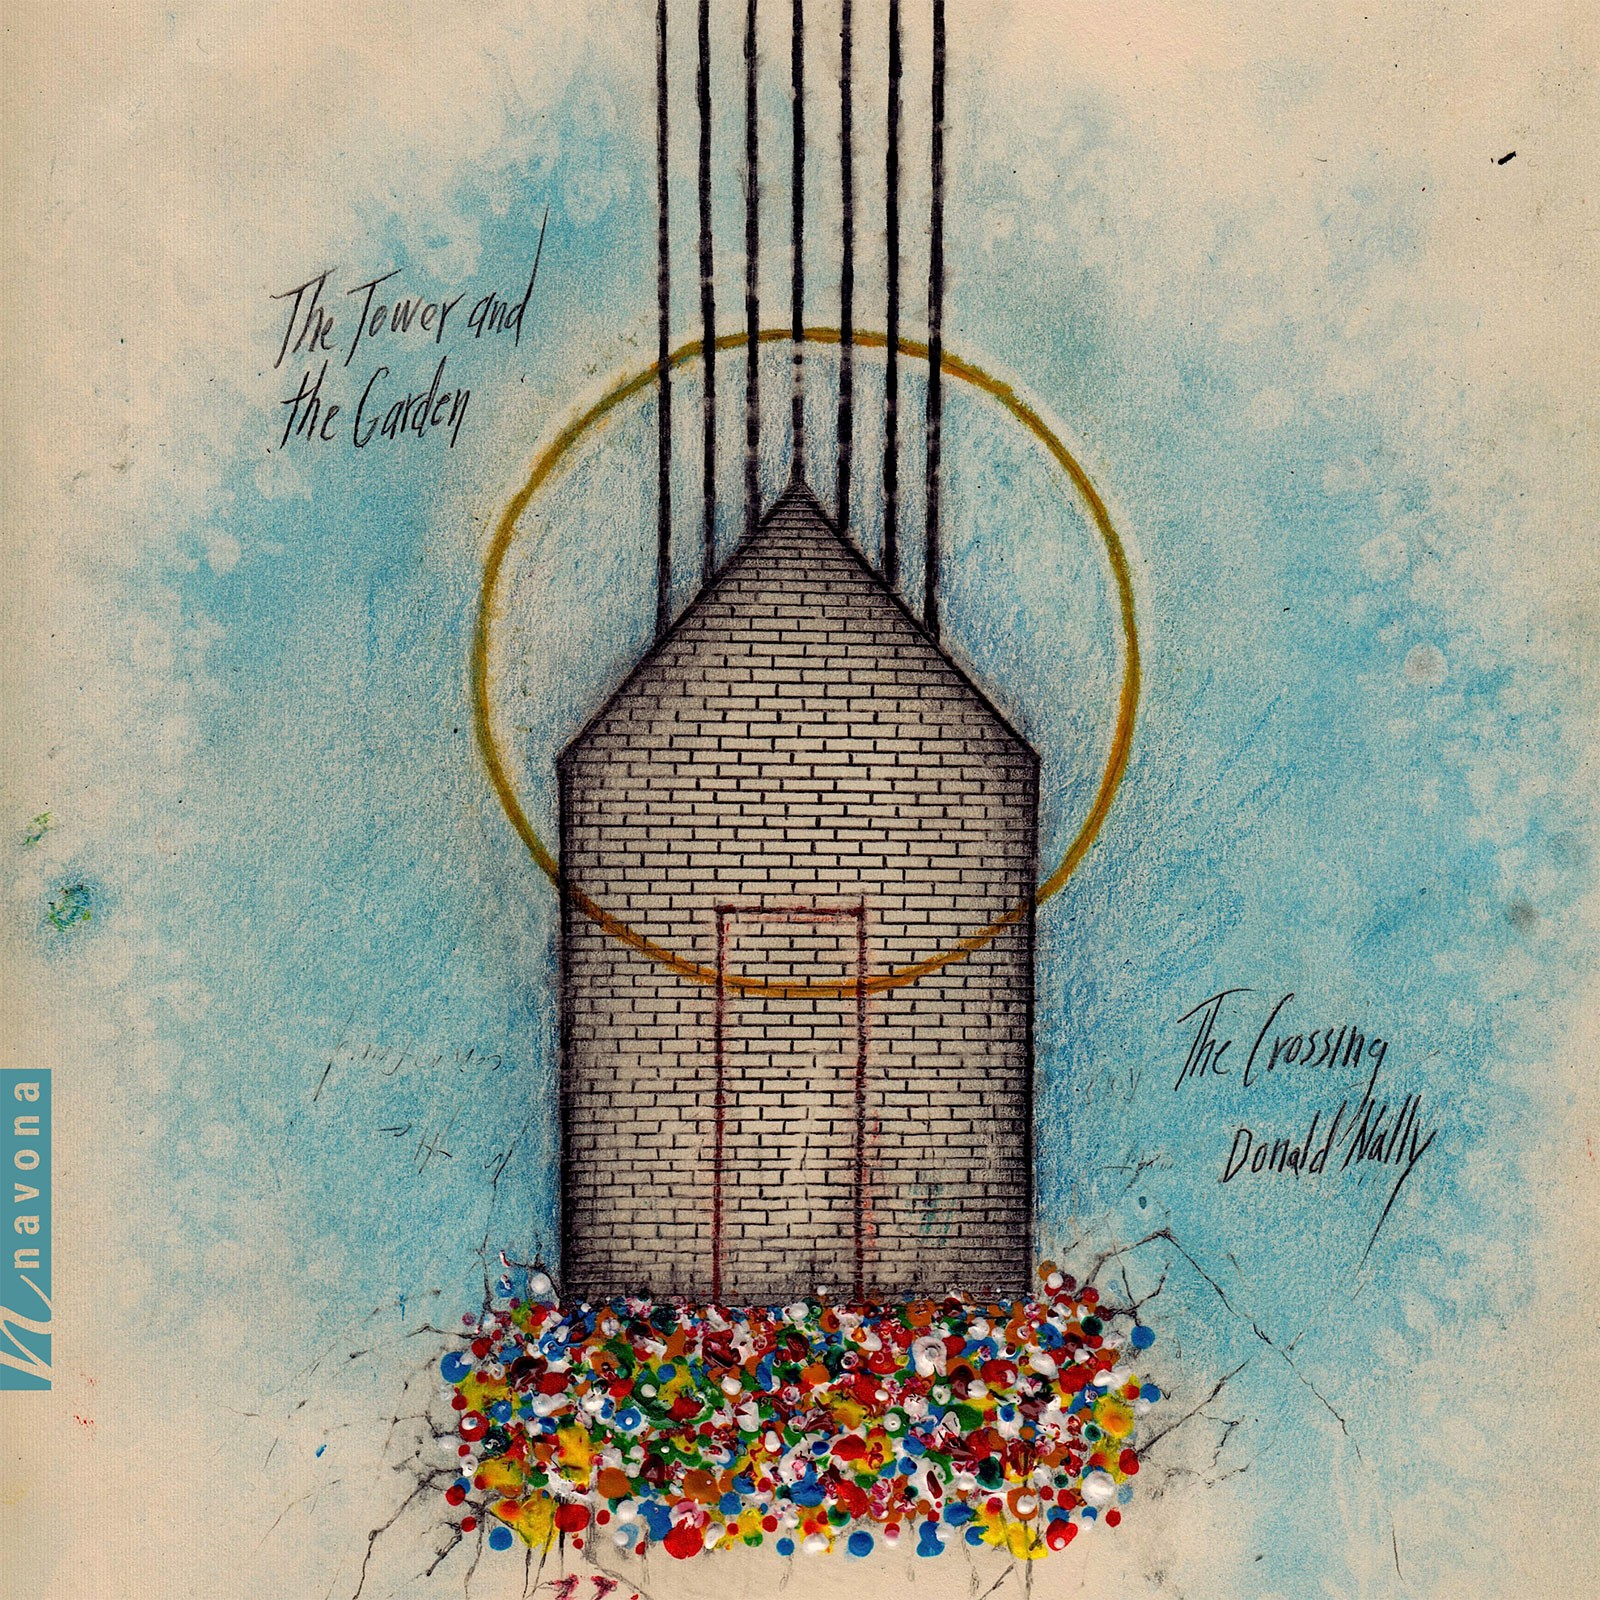 THE TOWER AND THE GARDEN - Album Cover